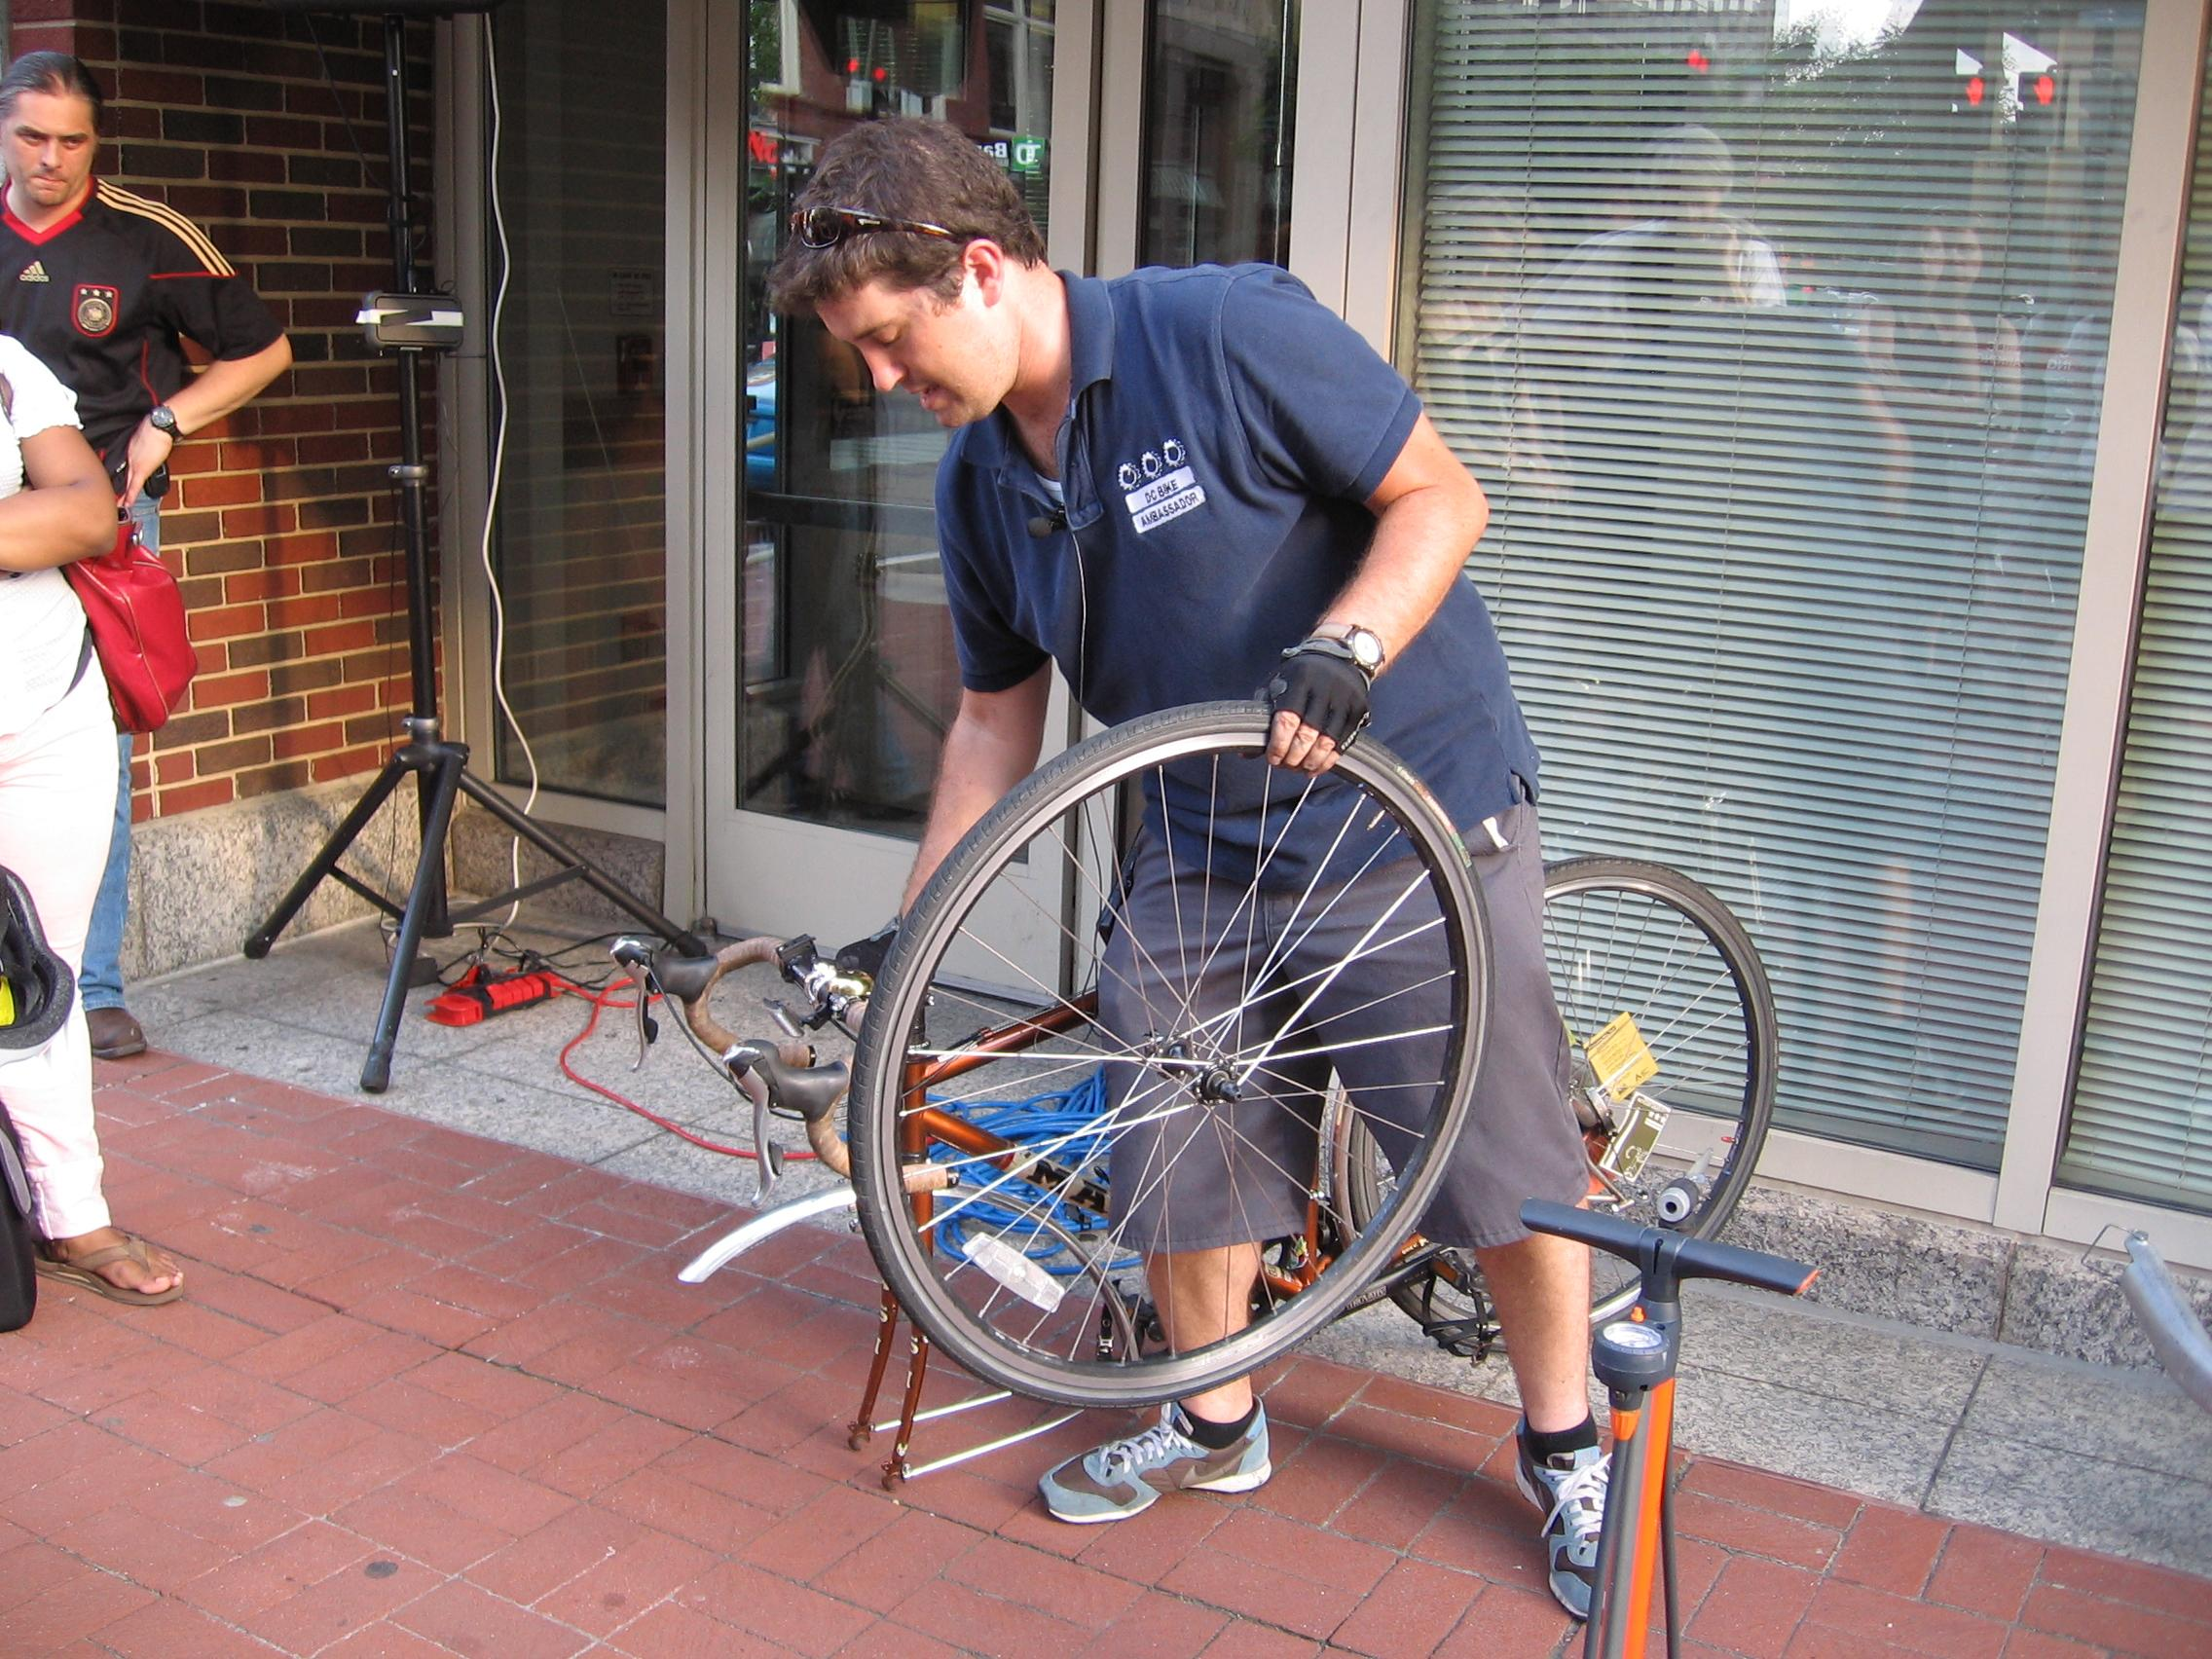 D.C. Bike Ambassador Daniel Hoagland demonstrates how to change a bike tire. Photo via Sylvia Blume.